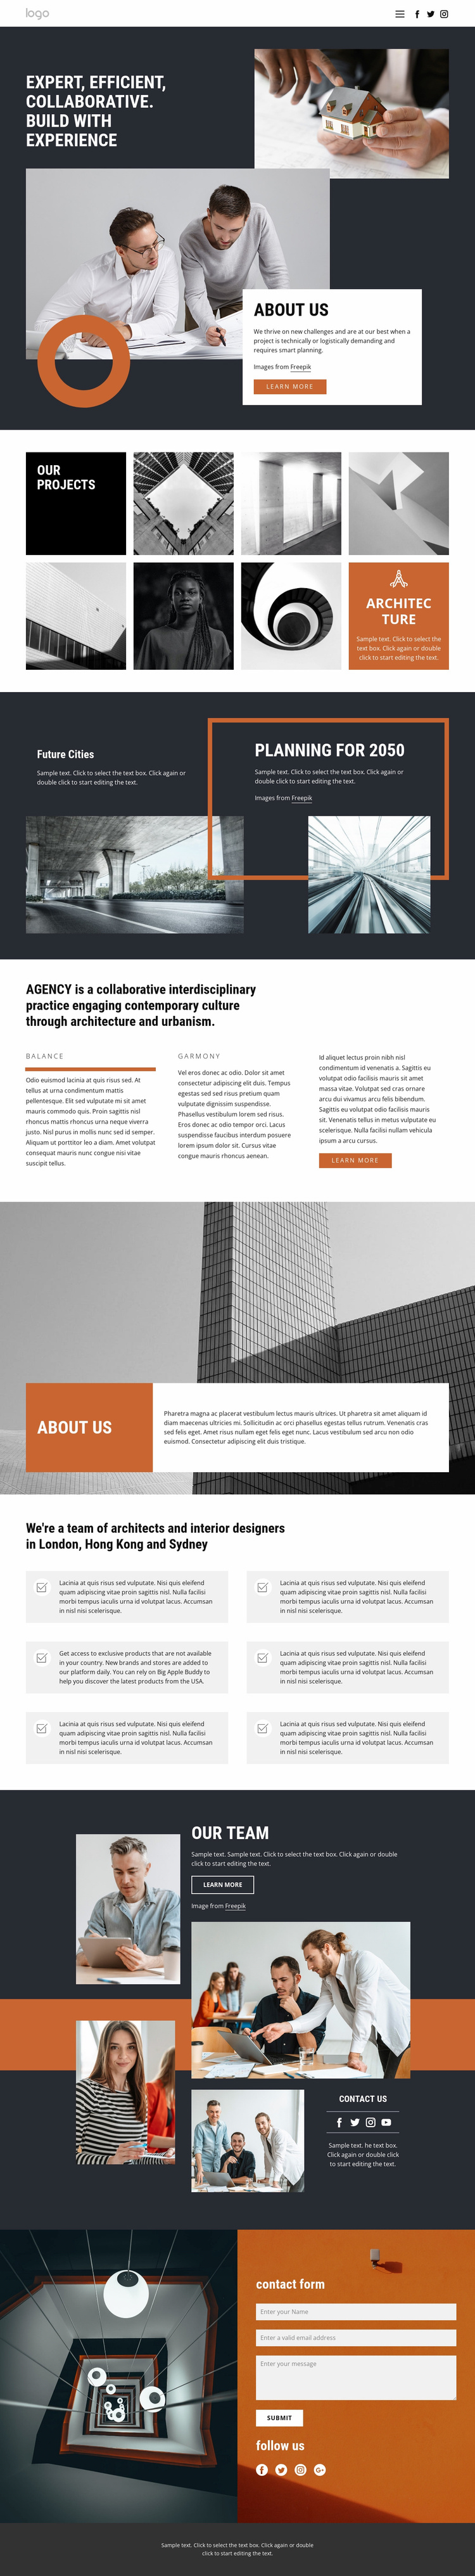 Architects design group Website Template